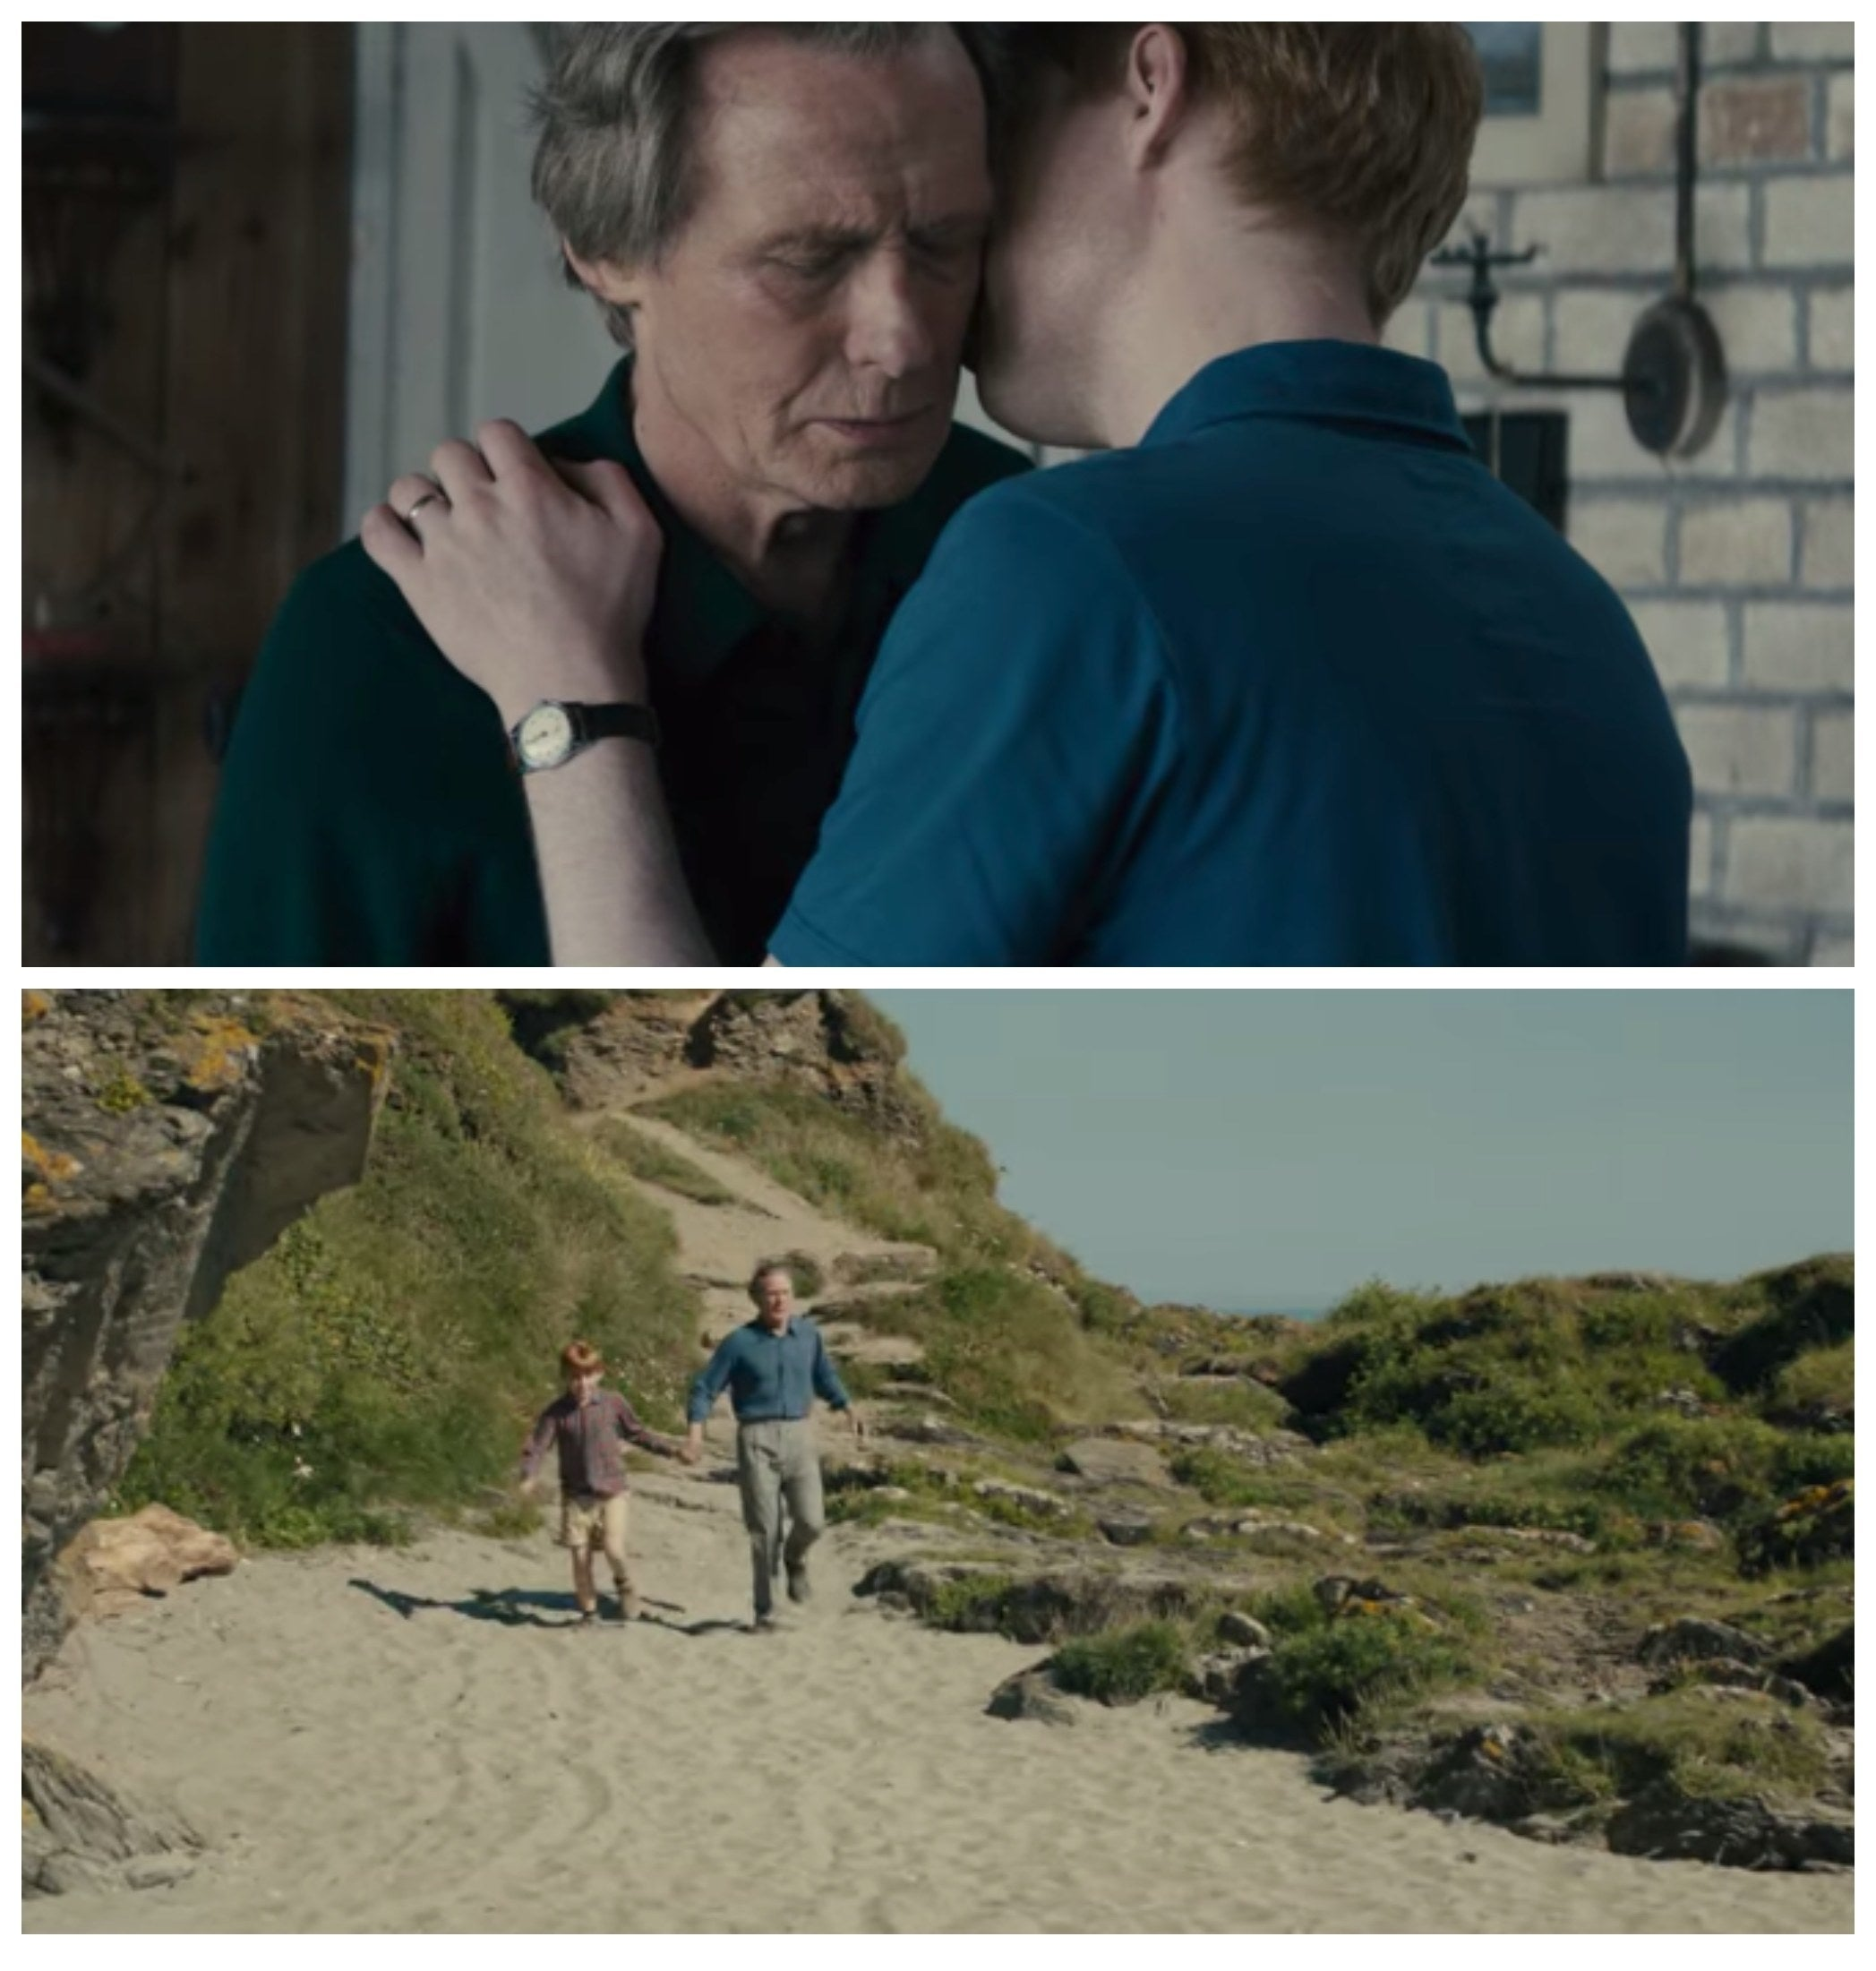 A collage of Tim kissing his father on the cheek and them walking down towards the beach in a childhood memory of Tim's